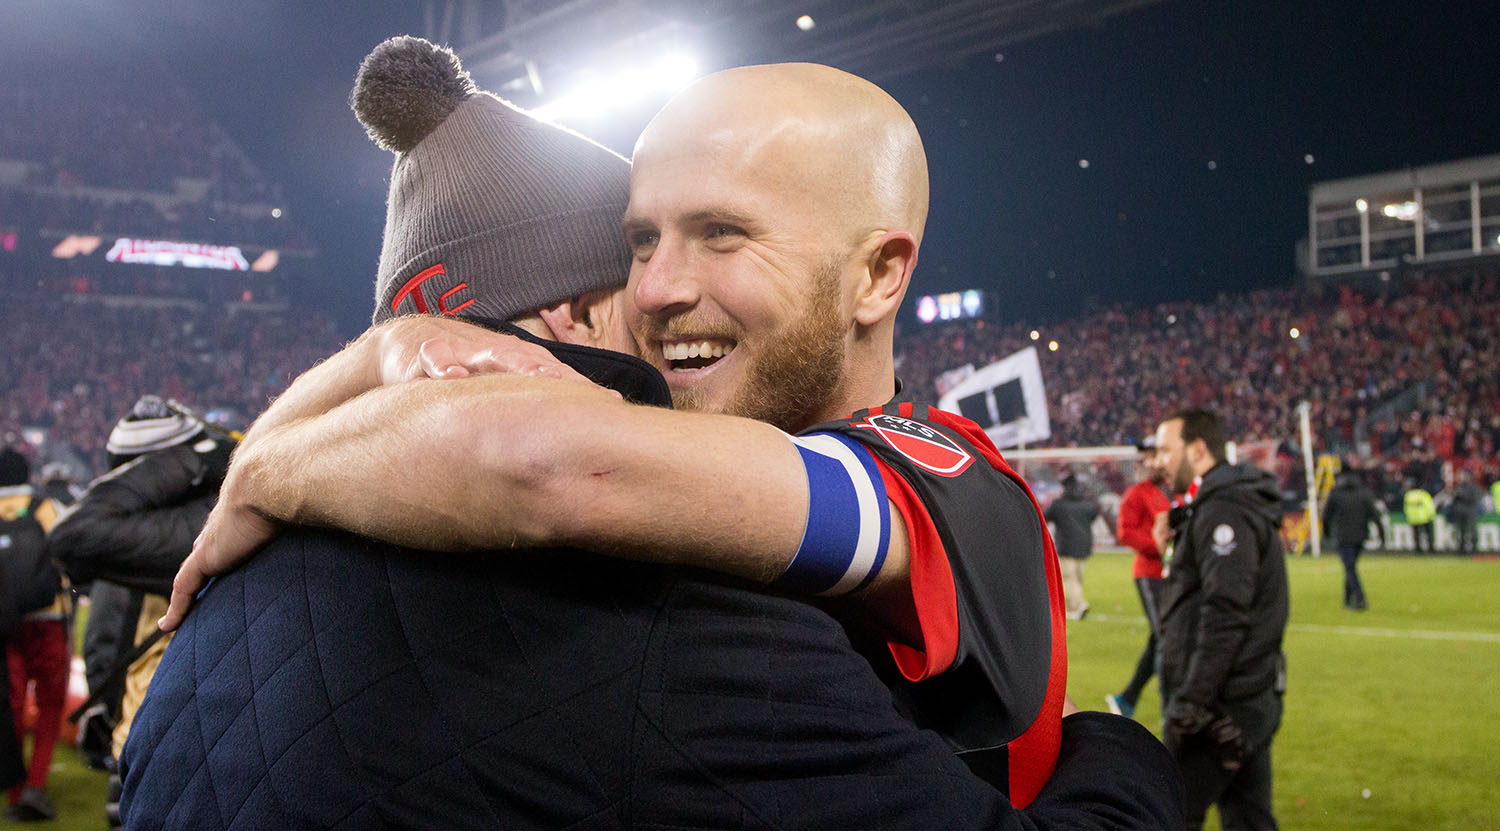 Michael Bradley elated over the 2017 MLS Cup win. It's been four years in the making for Michael.Image by Dennis Marciniak of denMAR Media.